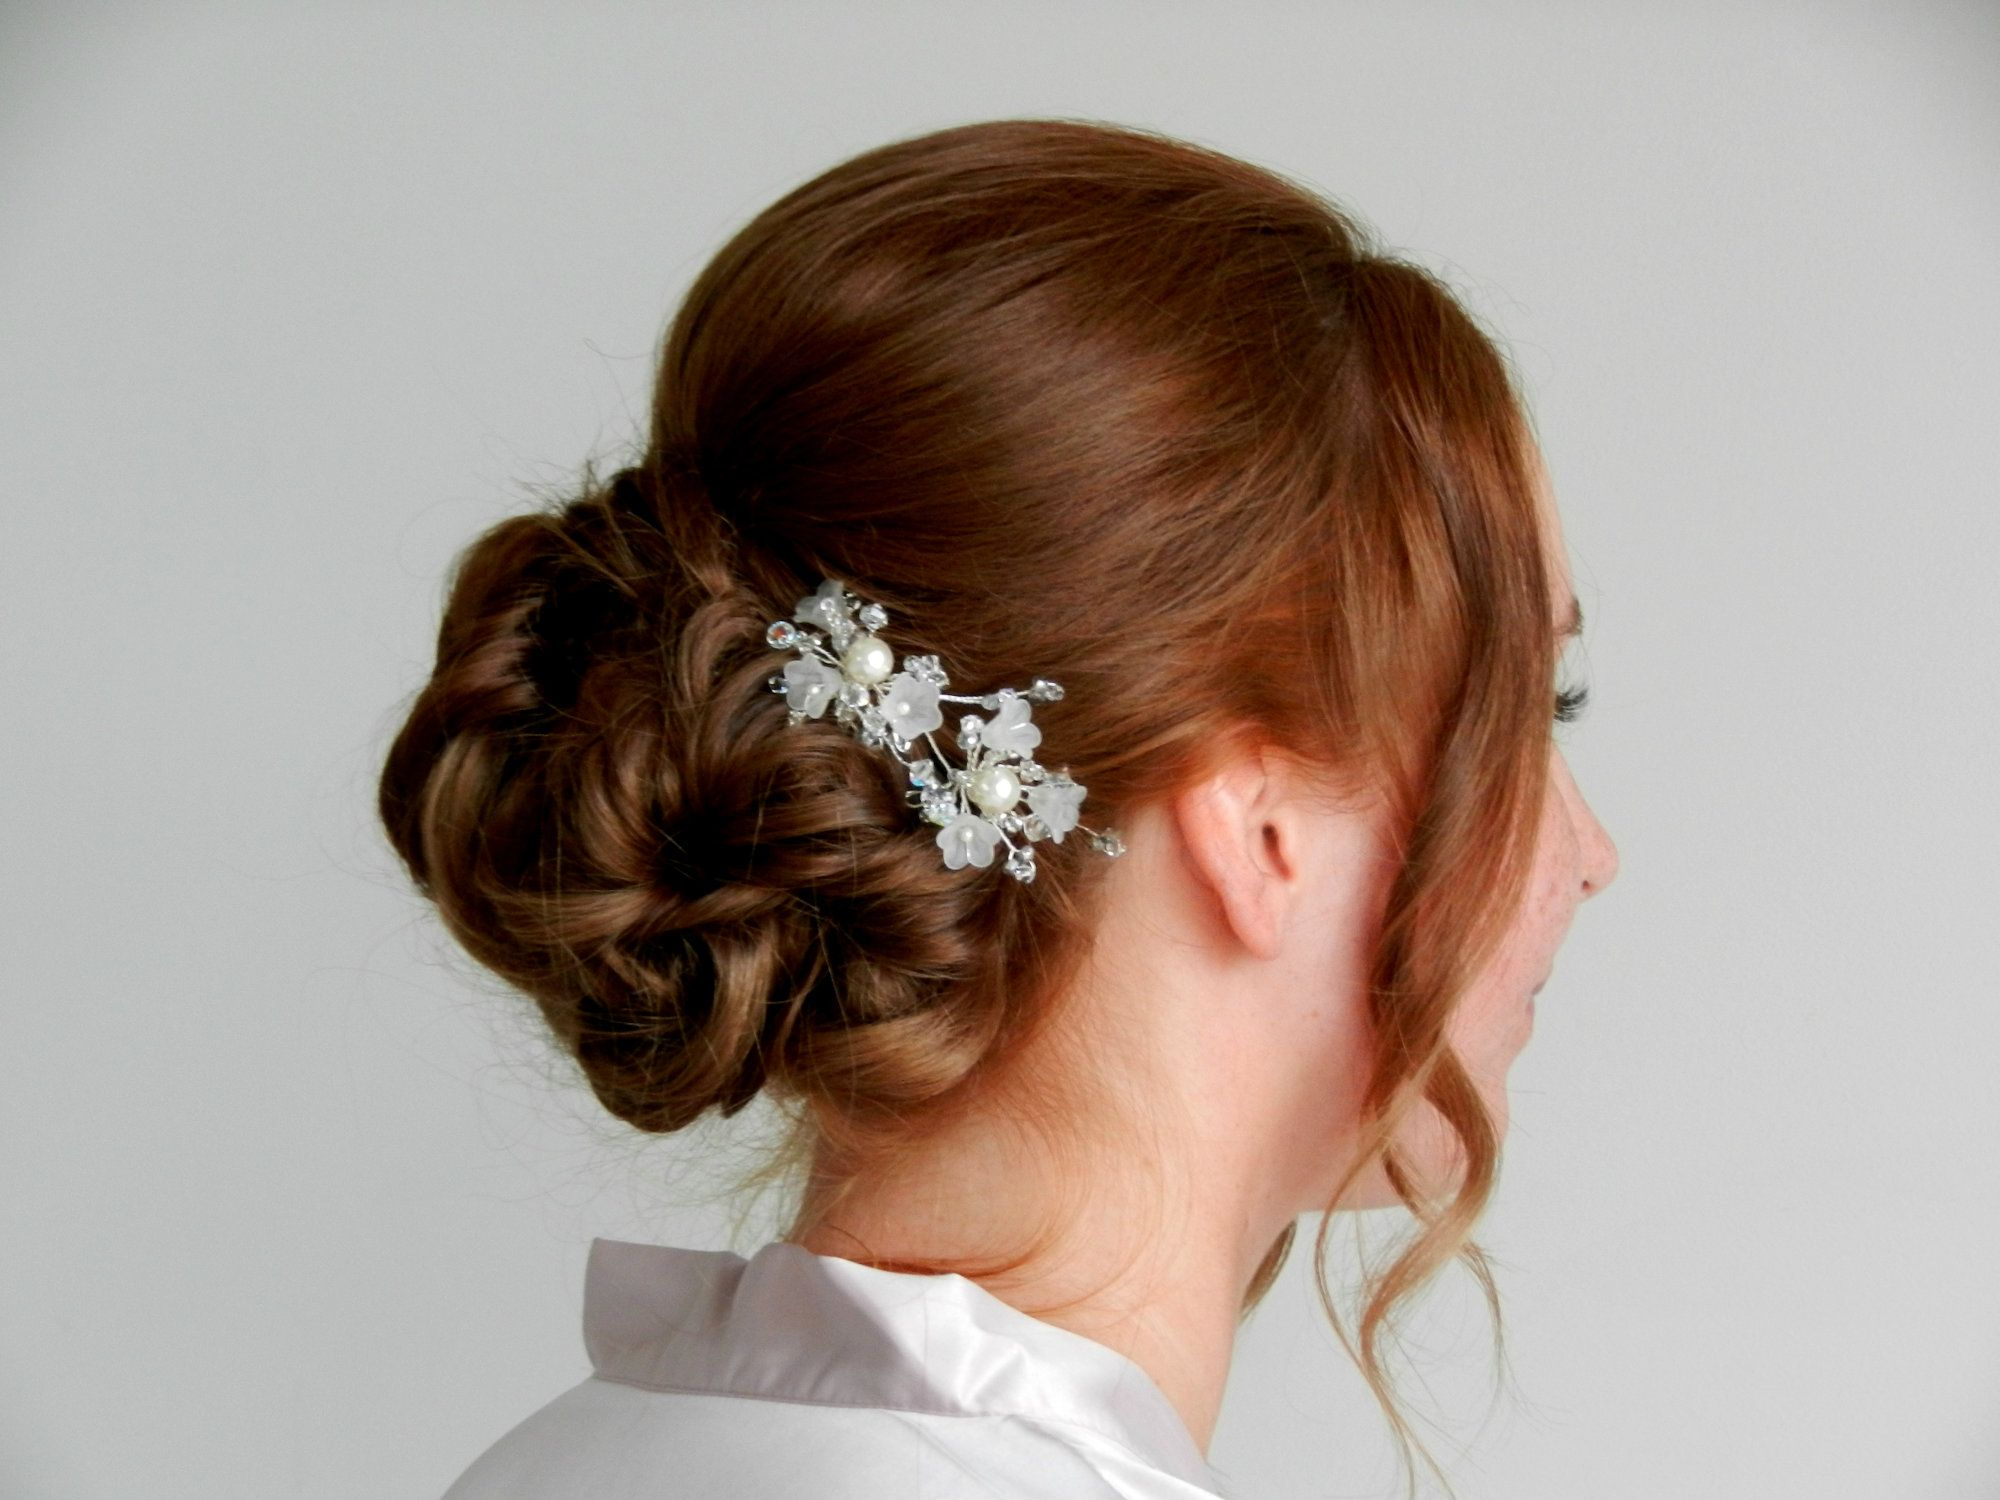 White-bridal-wedding-hair-accessory-UK-VRTY.bm 2.4